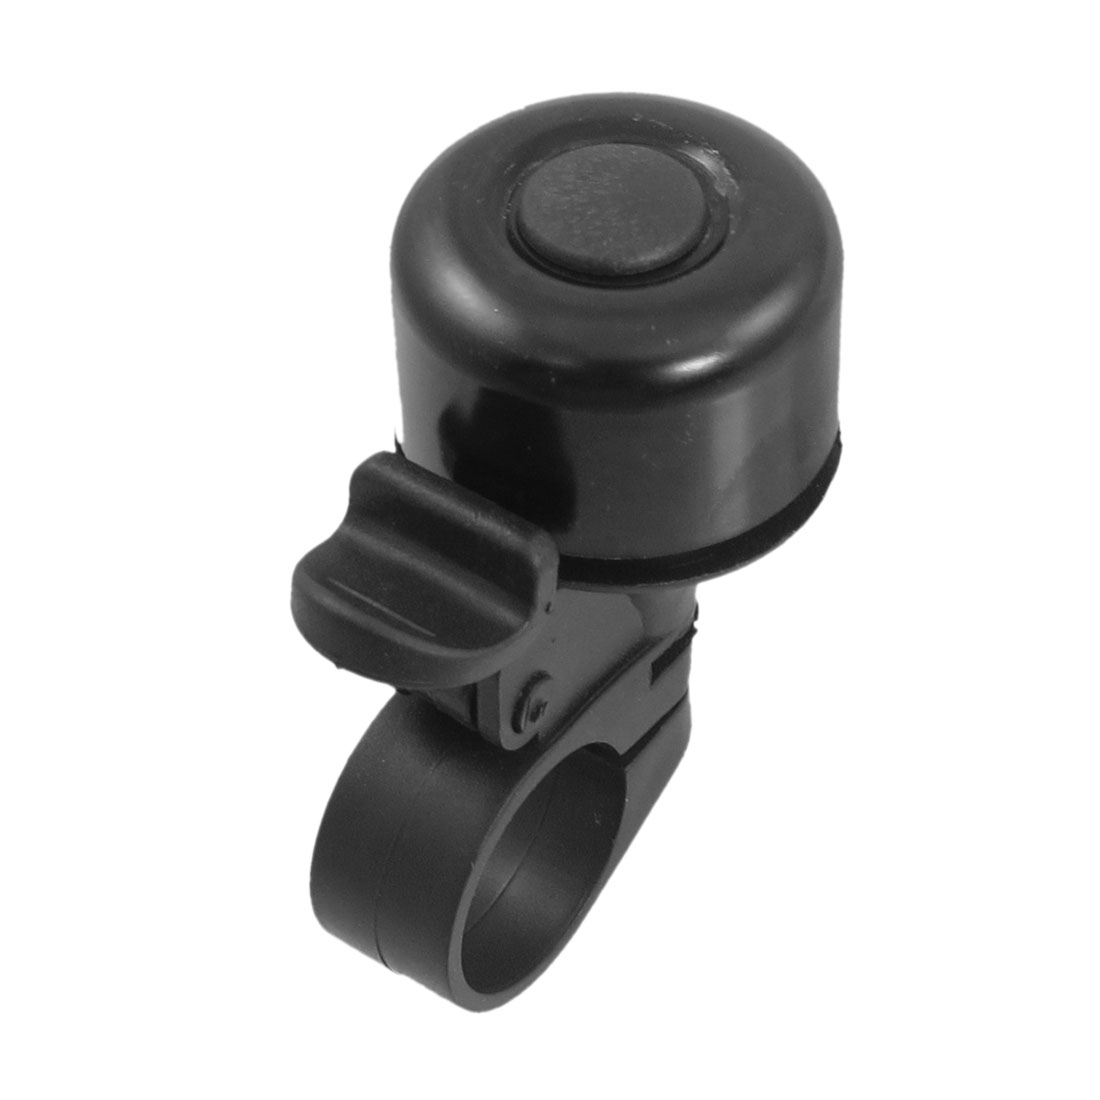 Black Alloy Housing Cylindrical Shaped Bicycle Handlebar Bell